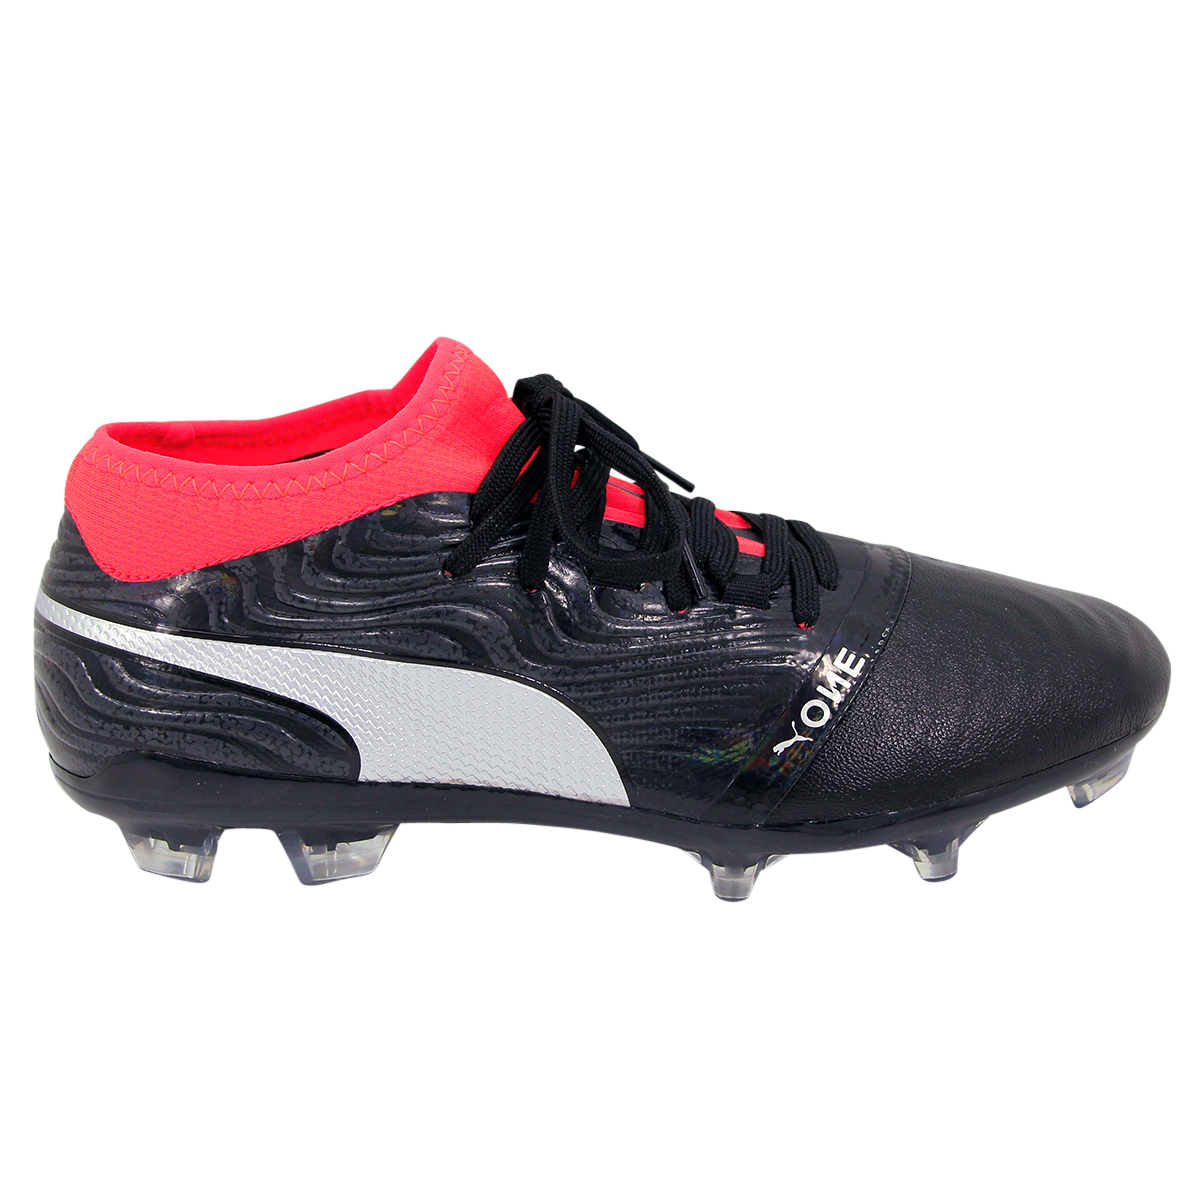 Chaussures Cuir Puma De One 18 Football 2 Fg nwO80Pk